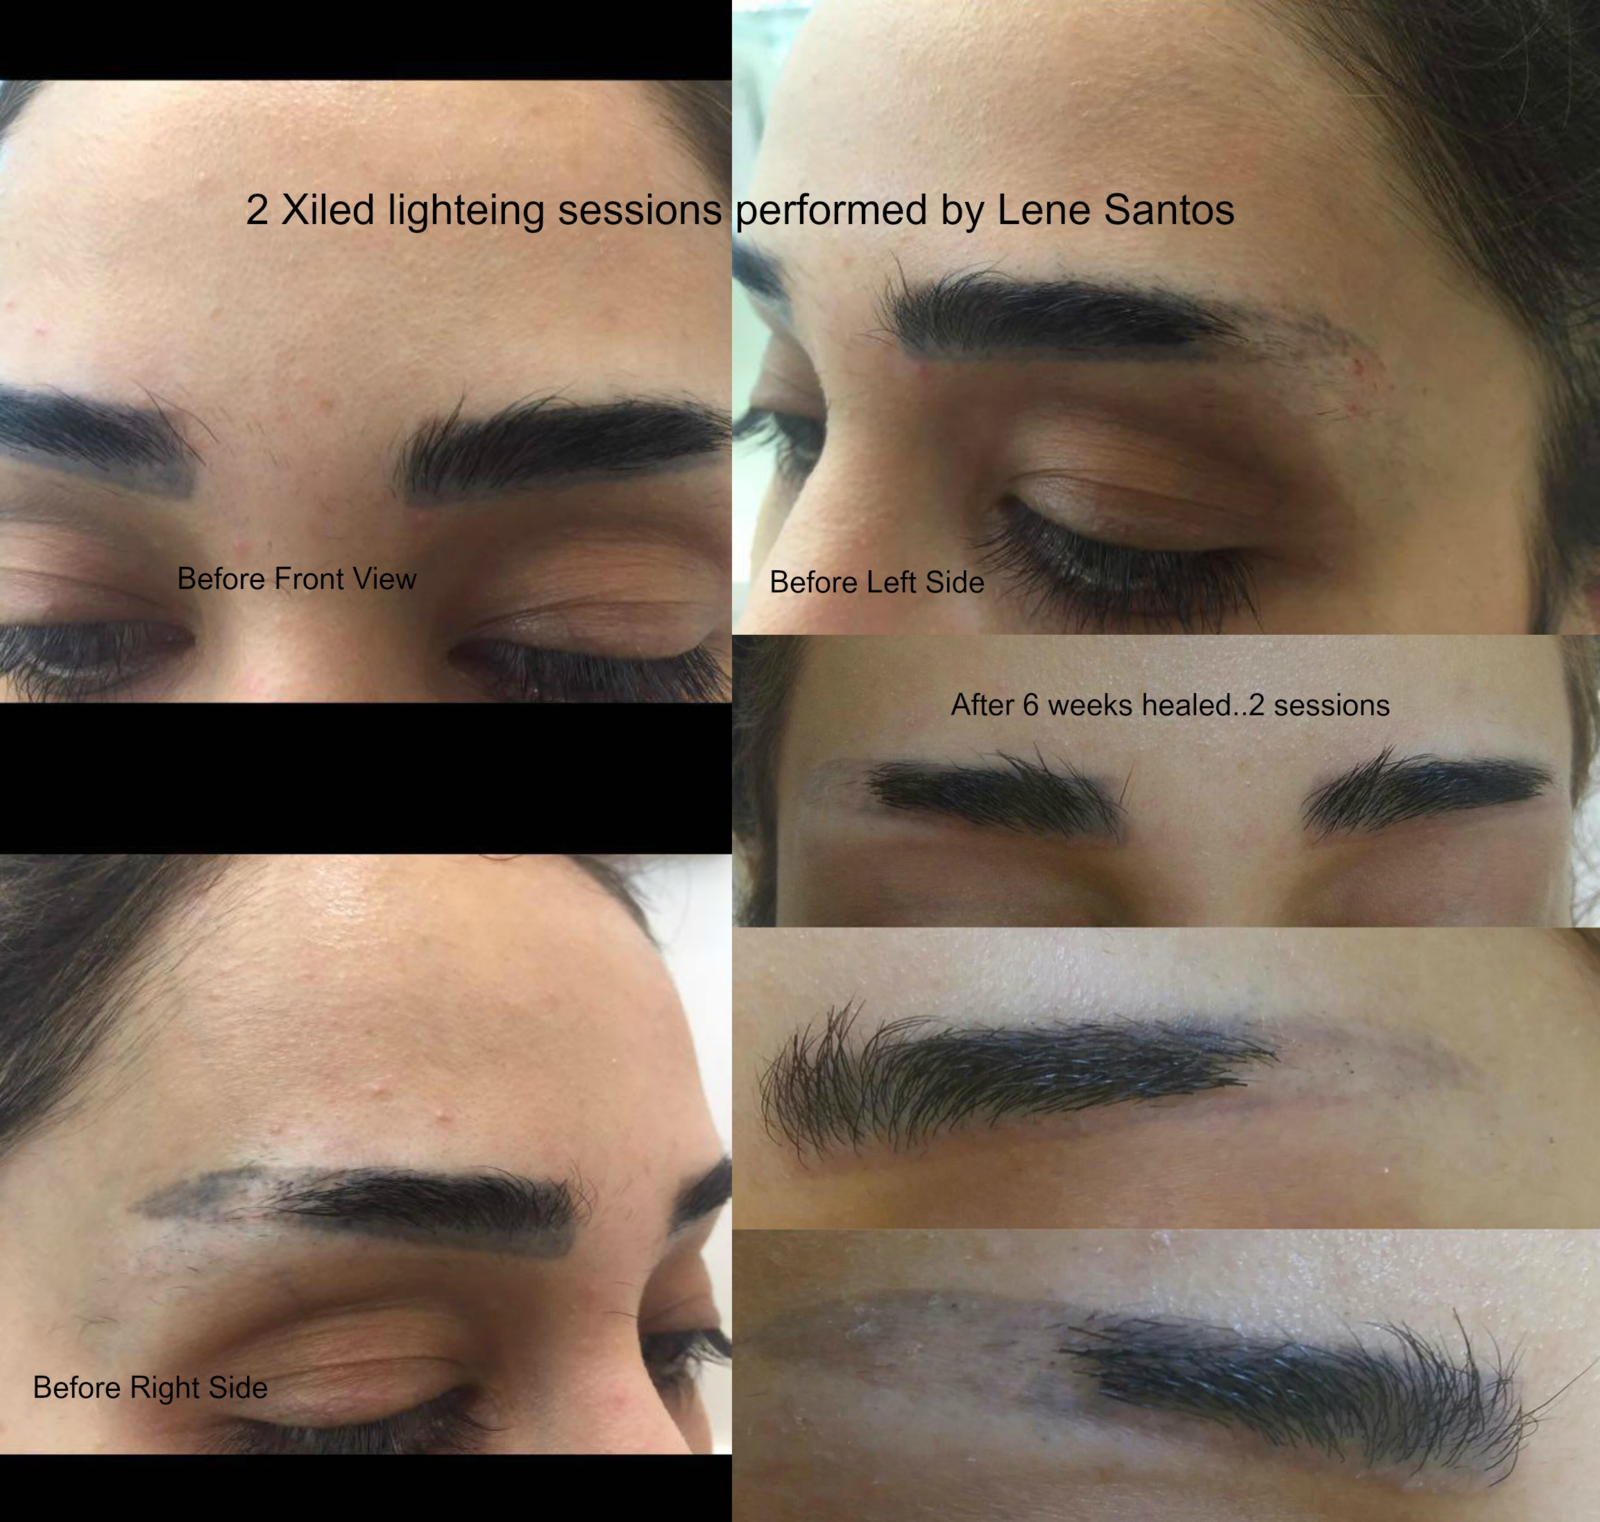 Healed results after 2 removal sessions